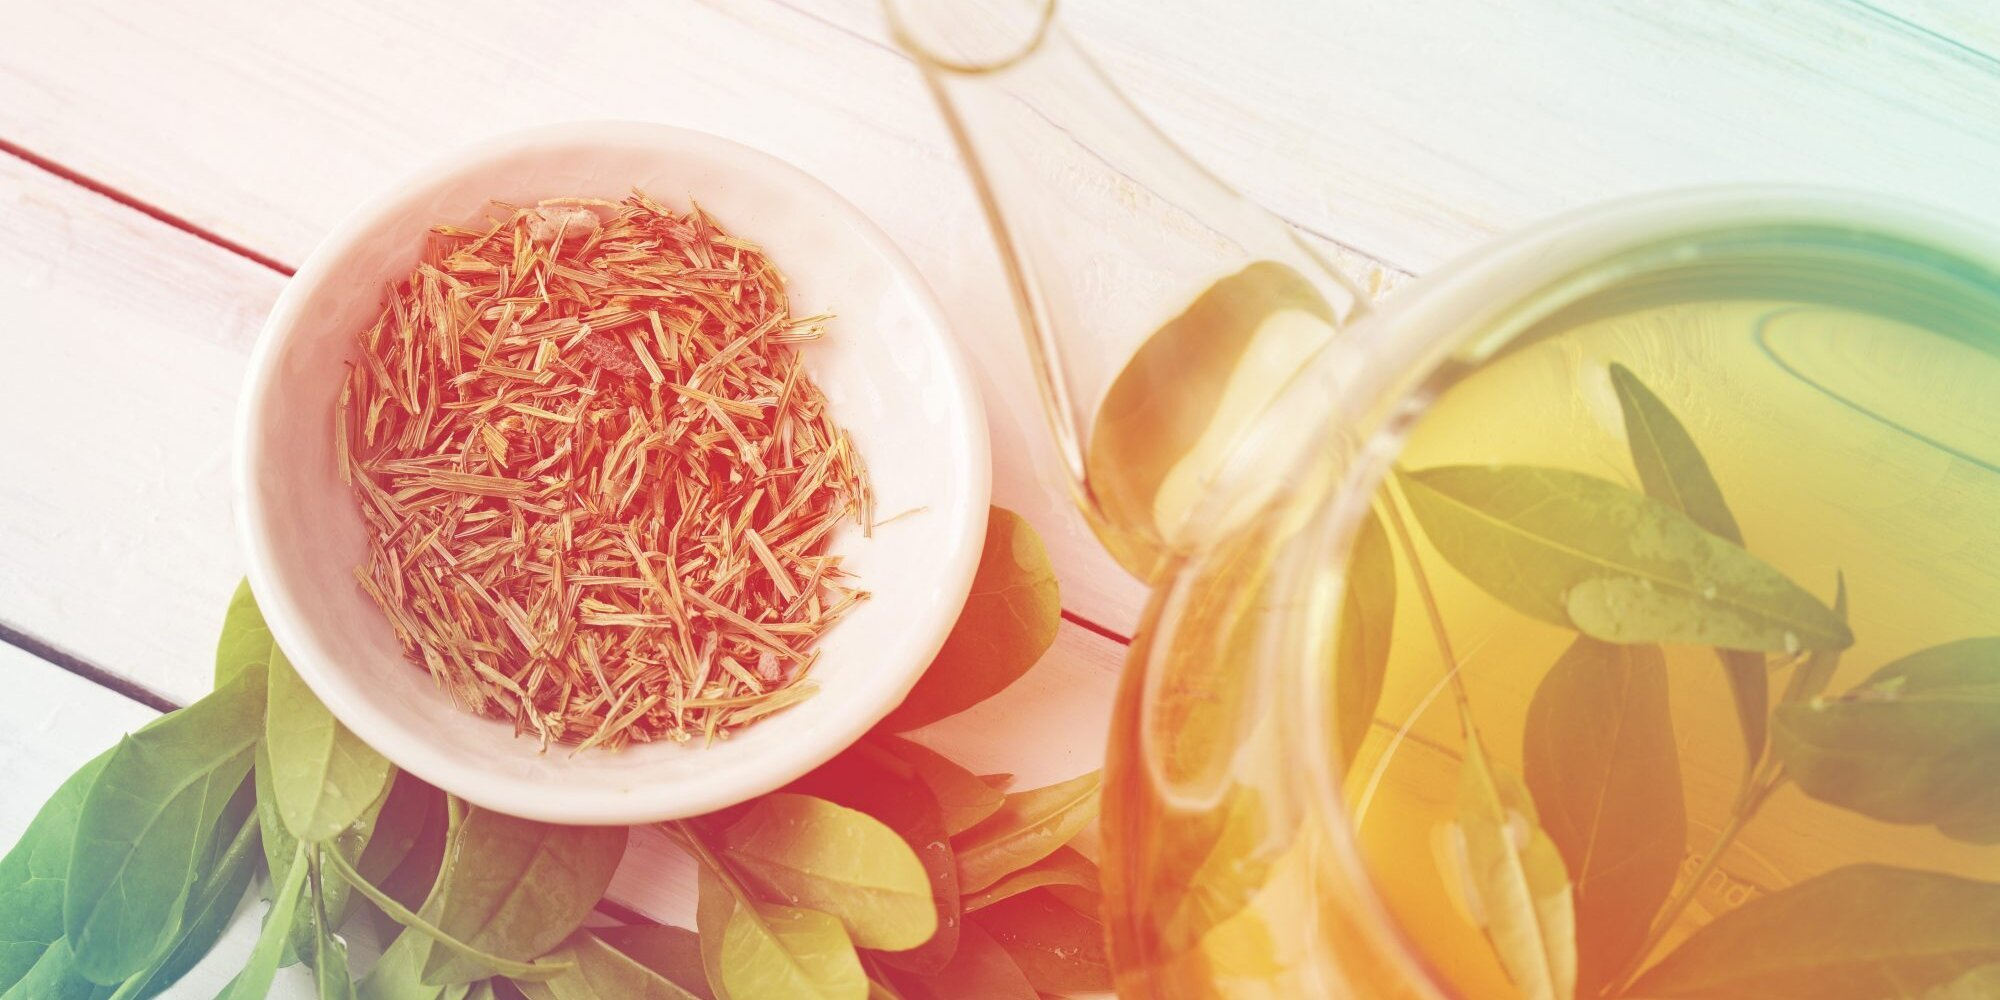 12 Reasons Why Green Tea is Good for You